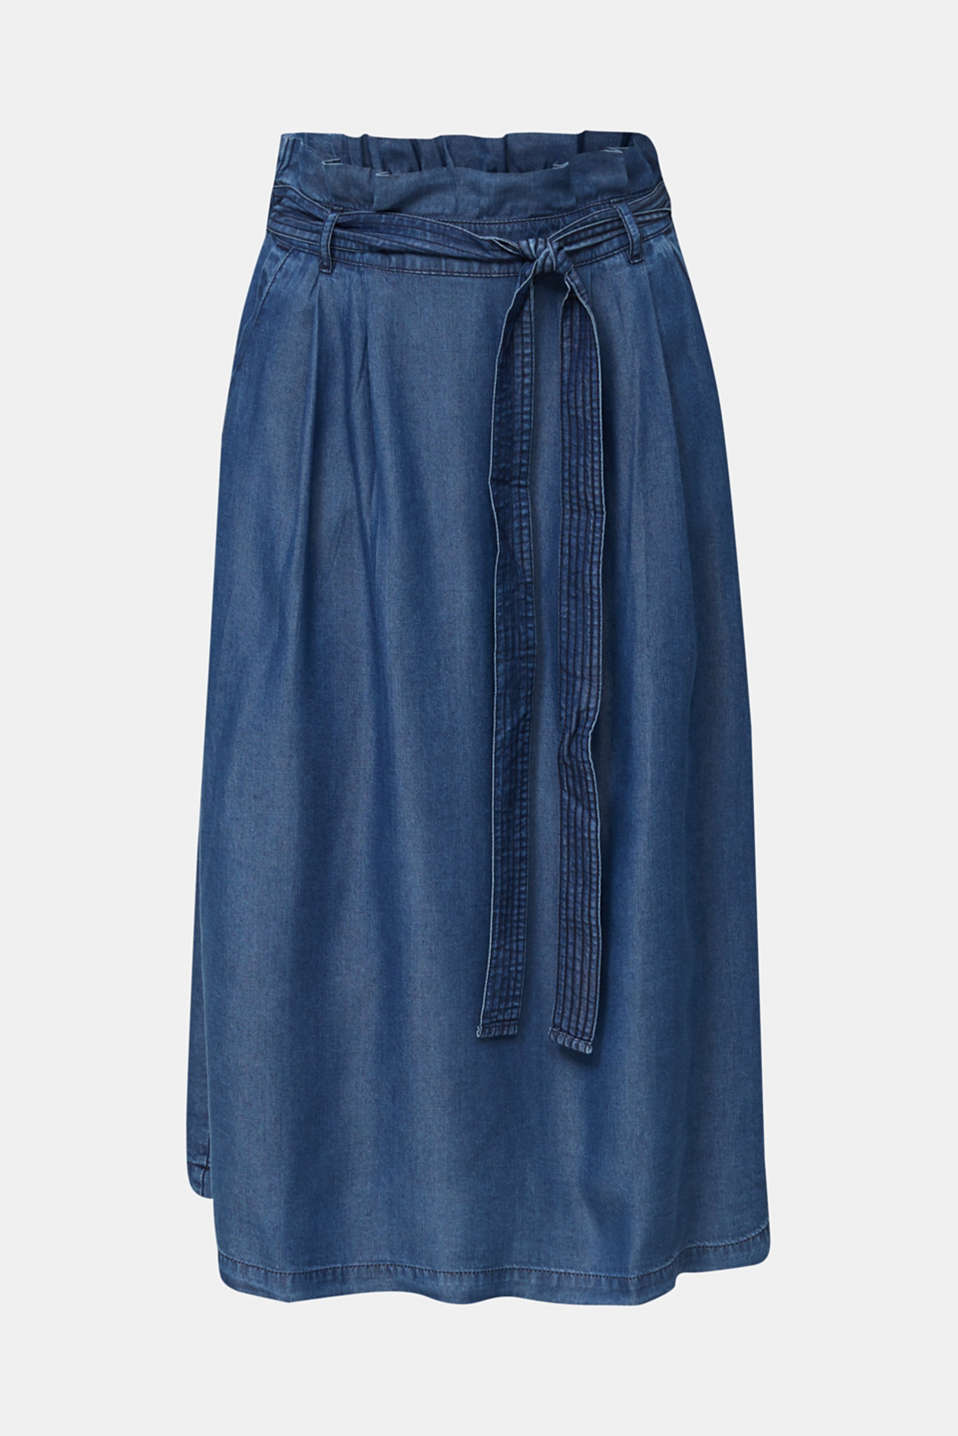 Skirt with a paperbag waistband made of TENCEL™, BLUE DARK WASH, detail image number 6